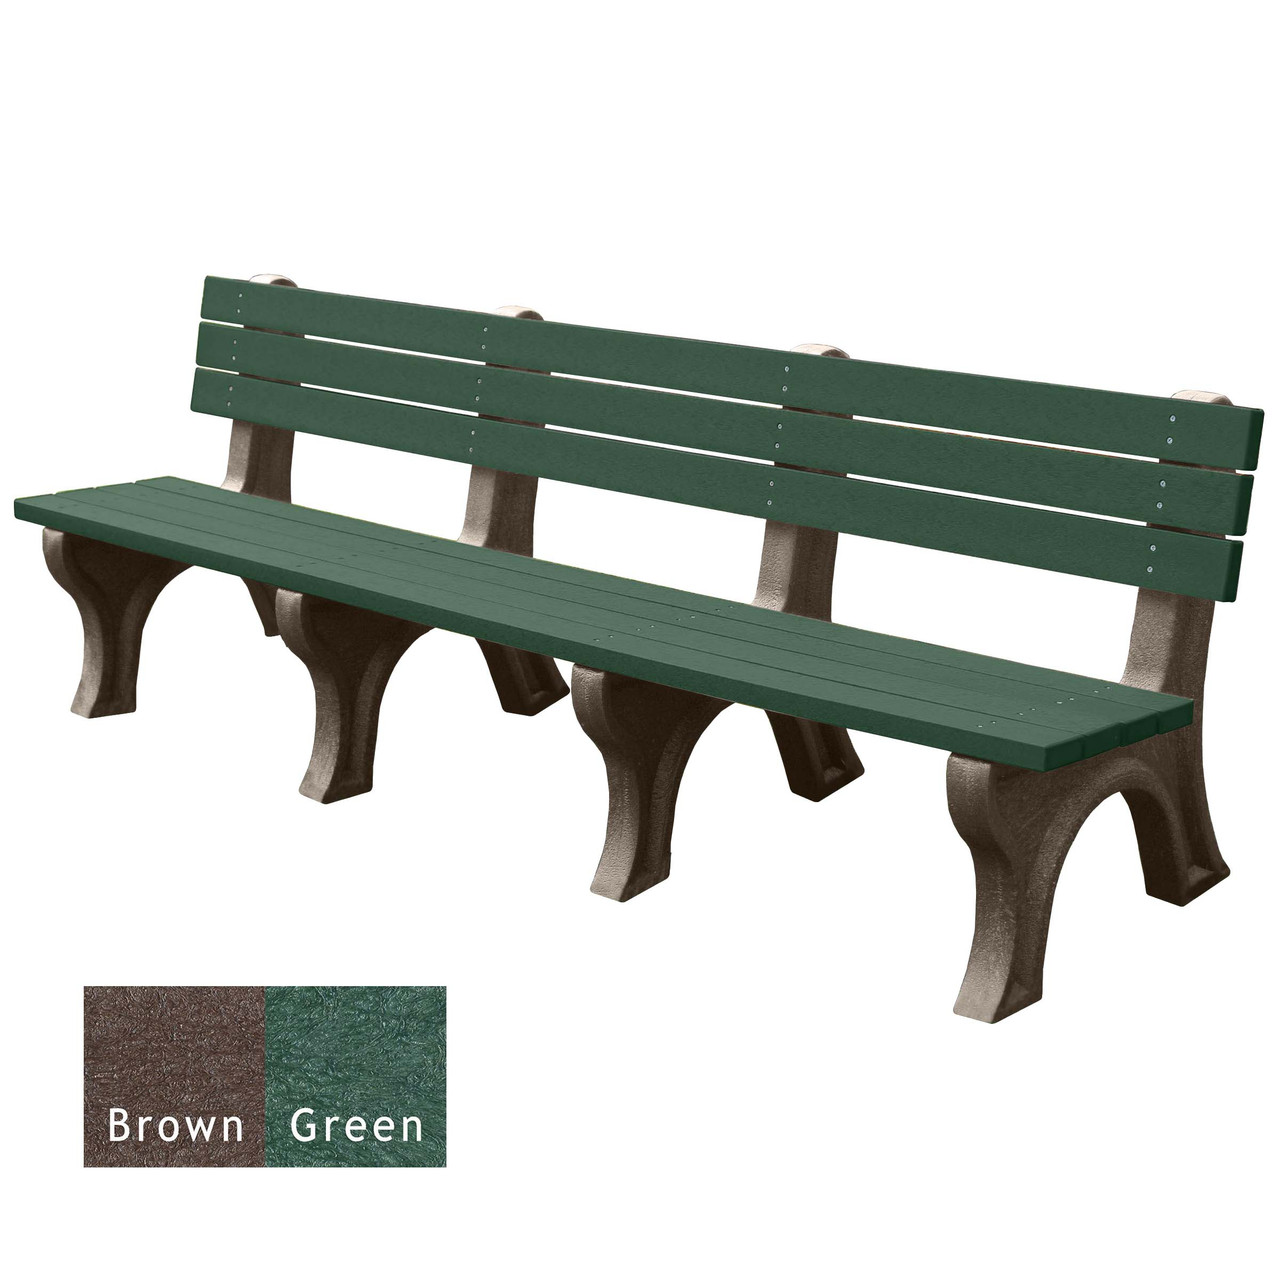 Brown and Green